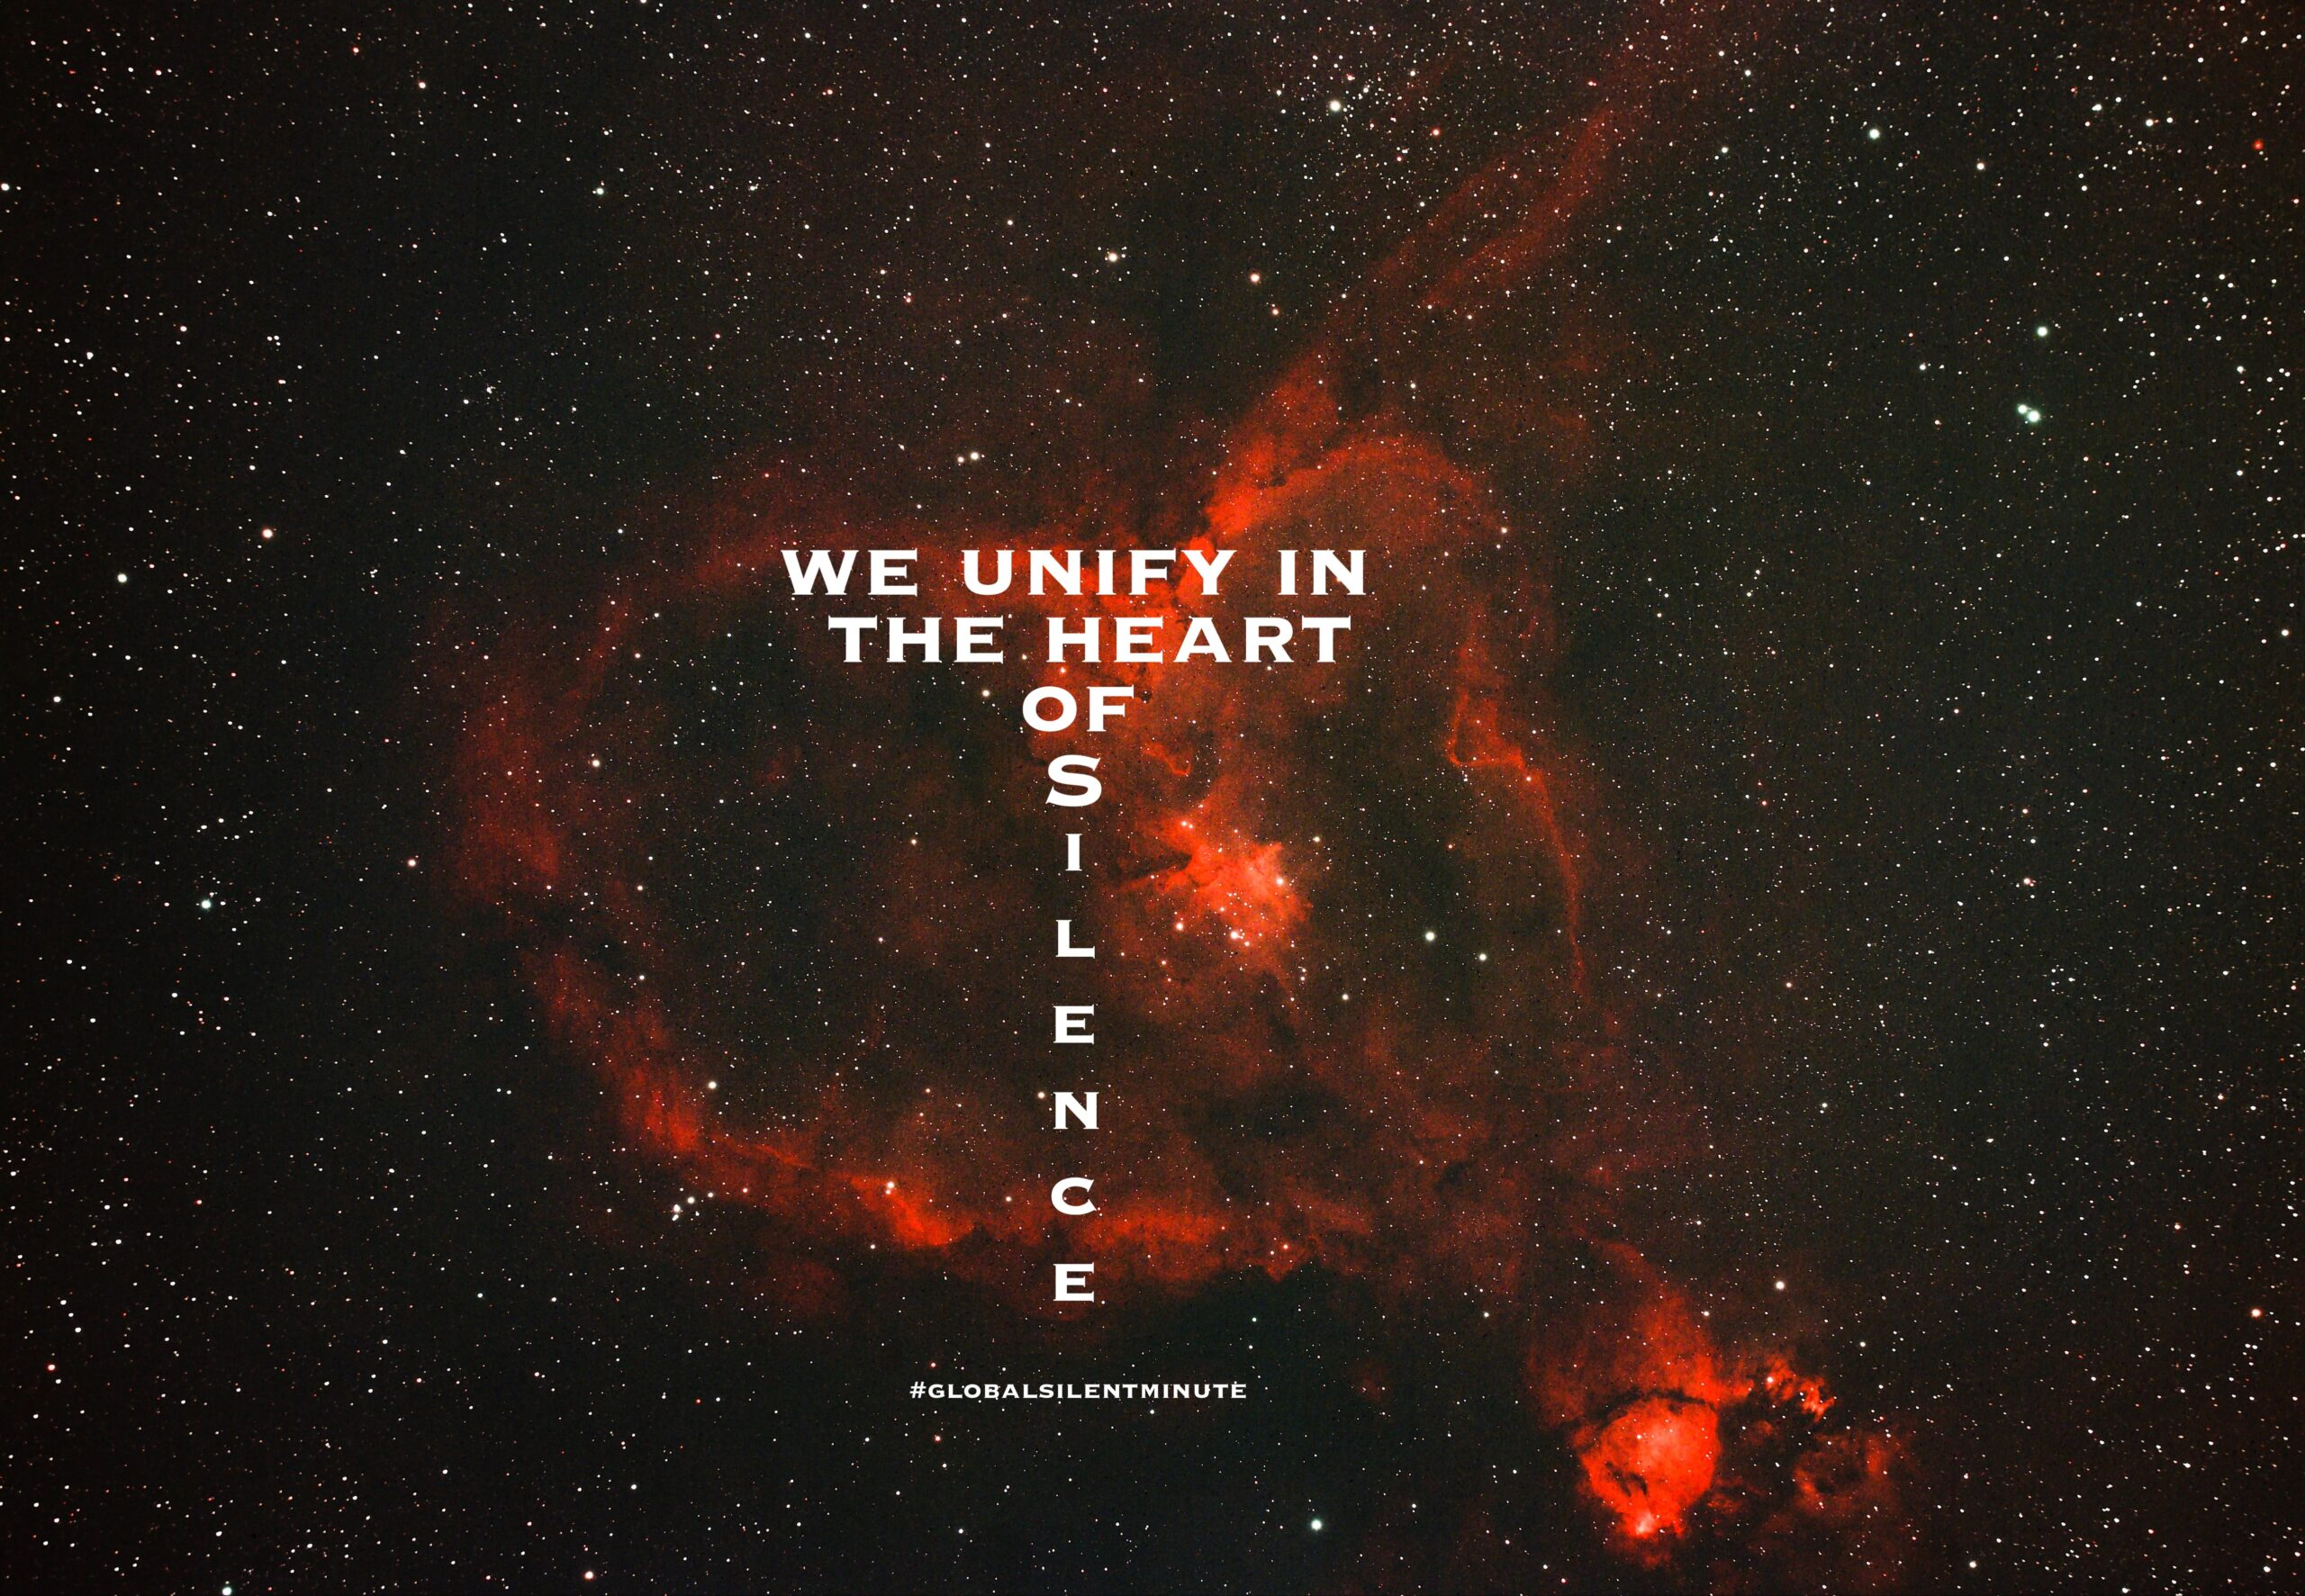 27. We unify in the Heart of Silence